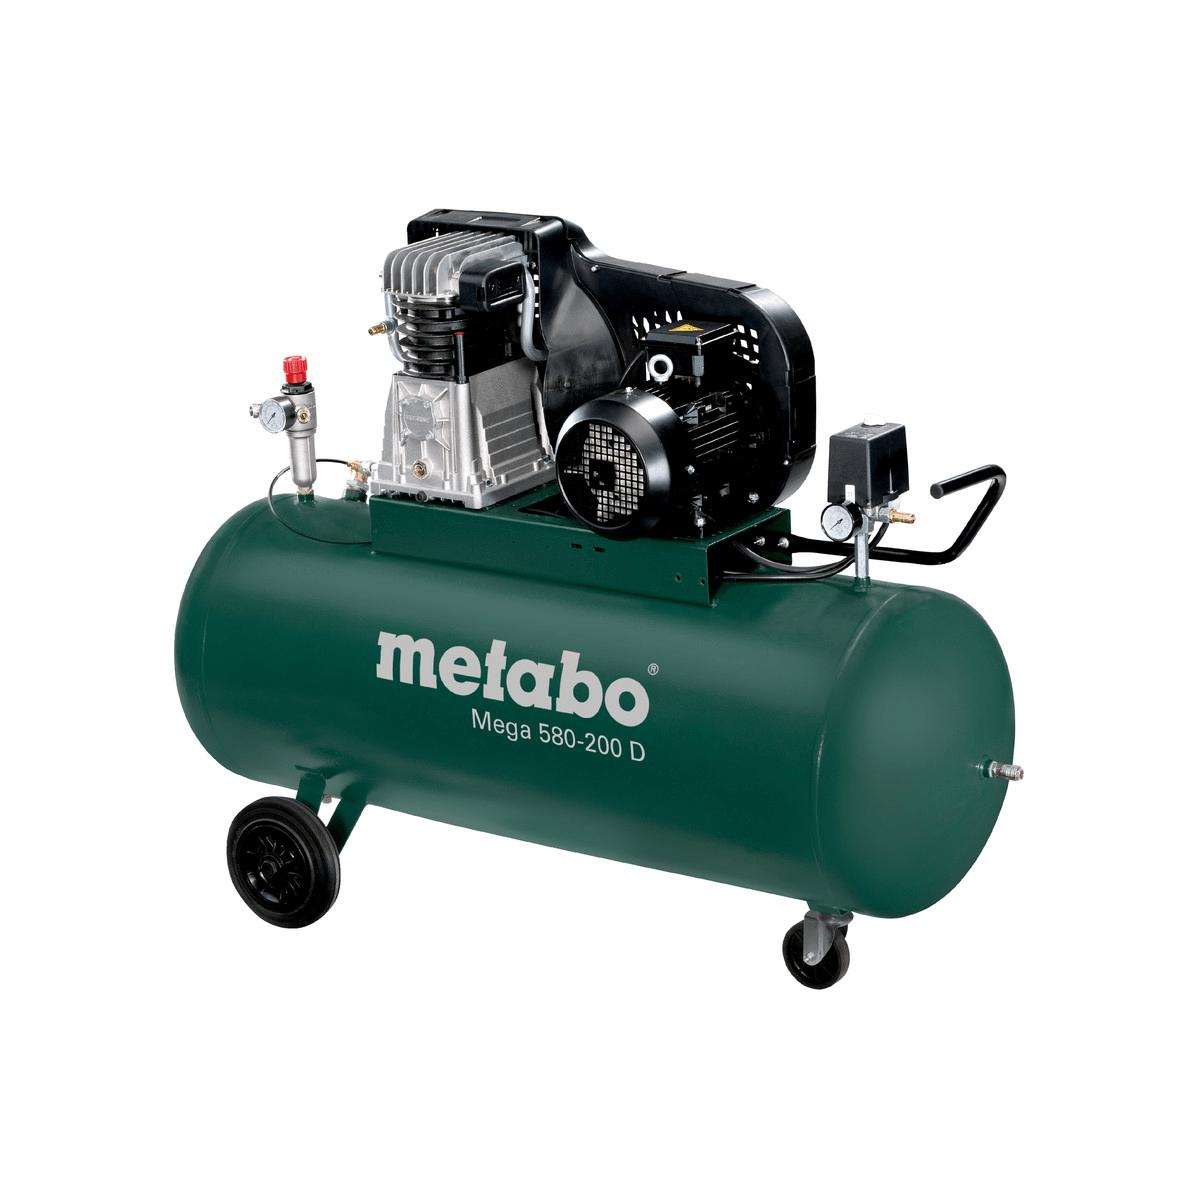 metabo kompressor mega 580 200 d 400 v 200 liter 11 bar. Black Bedroom Furniture Sets. Home Design Ideas